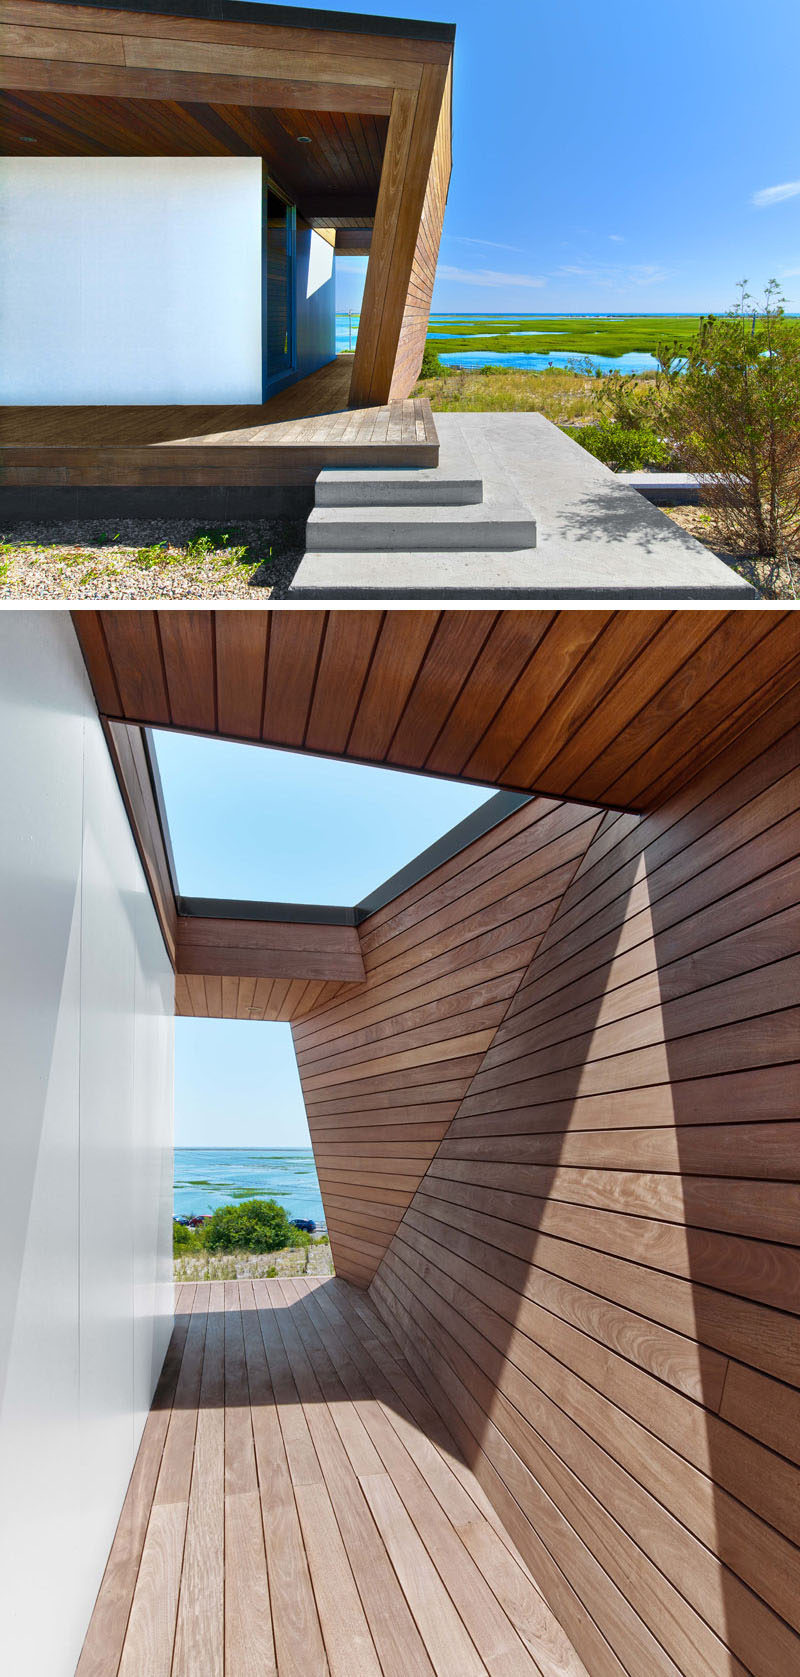 Welcoming you to this modern home is a one storey sculptural entrance wrapped in wood that takes inspiration from the faceted shape of rocks that are washed ashore on the beach.